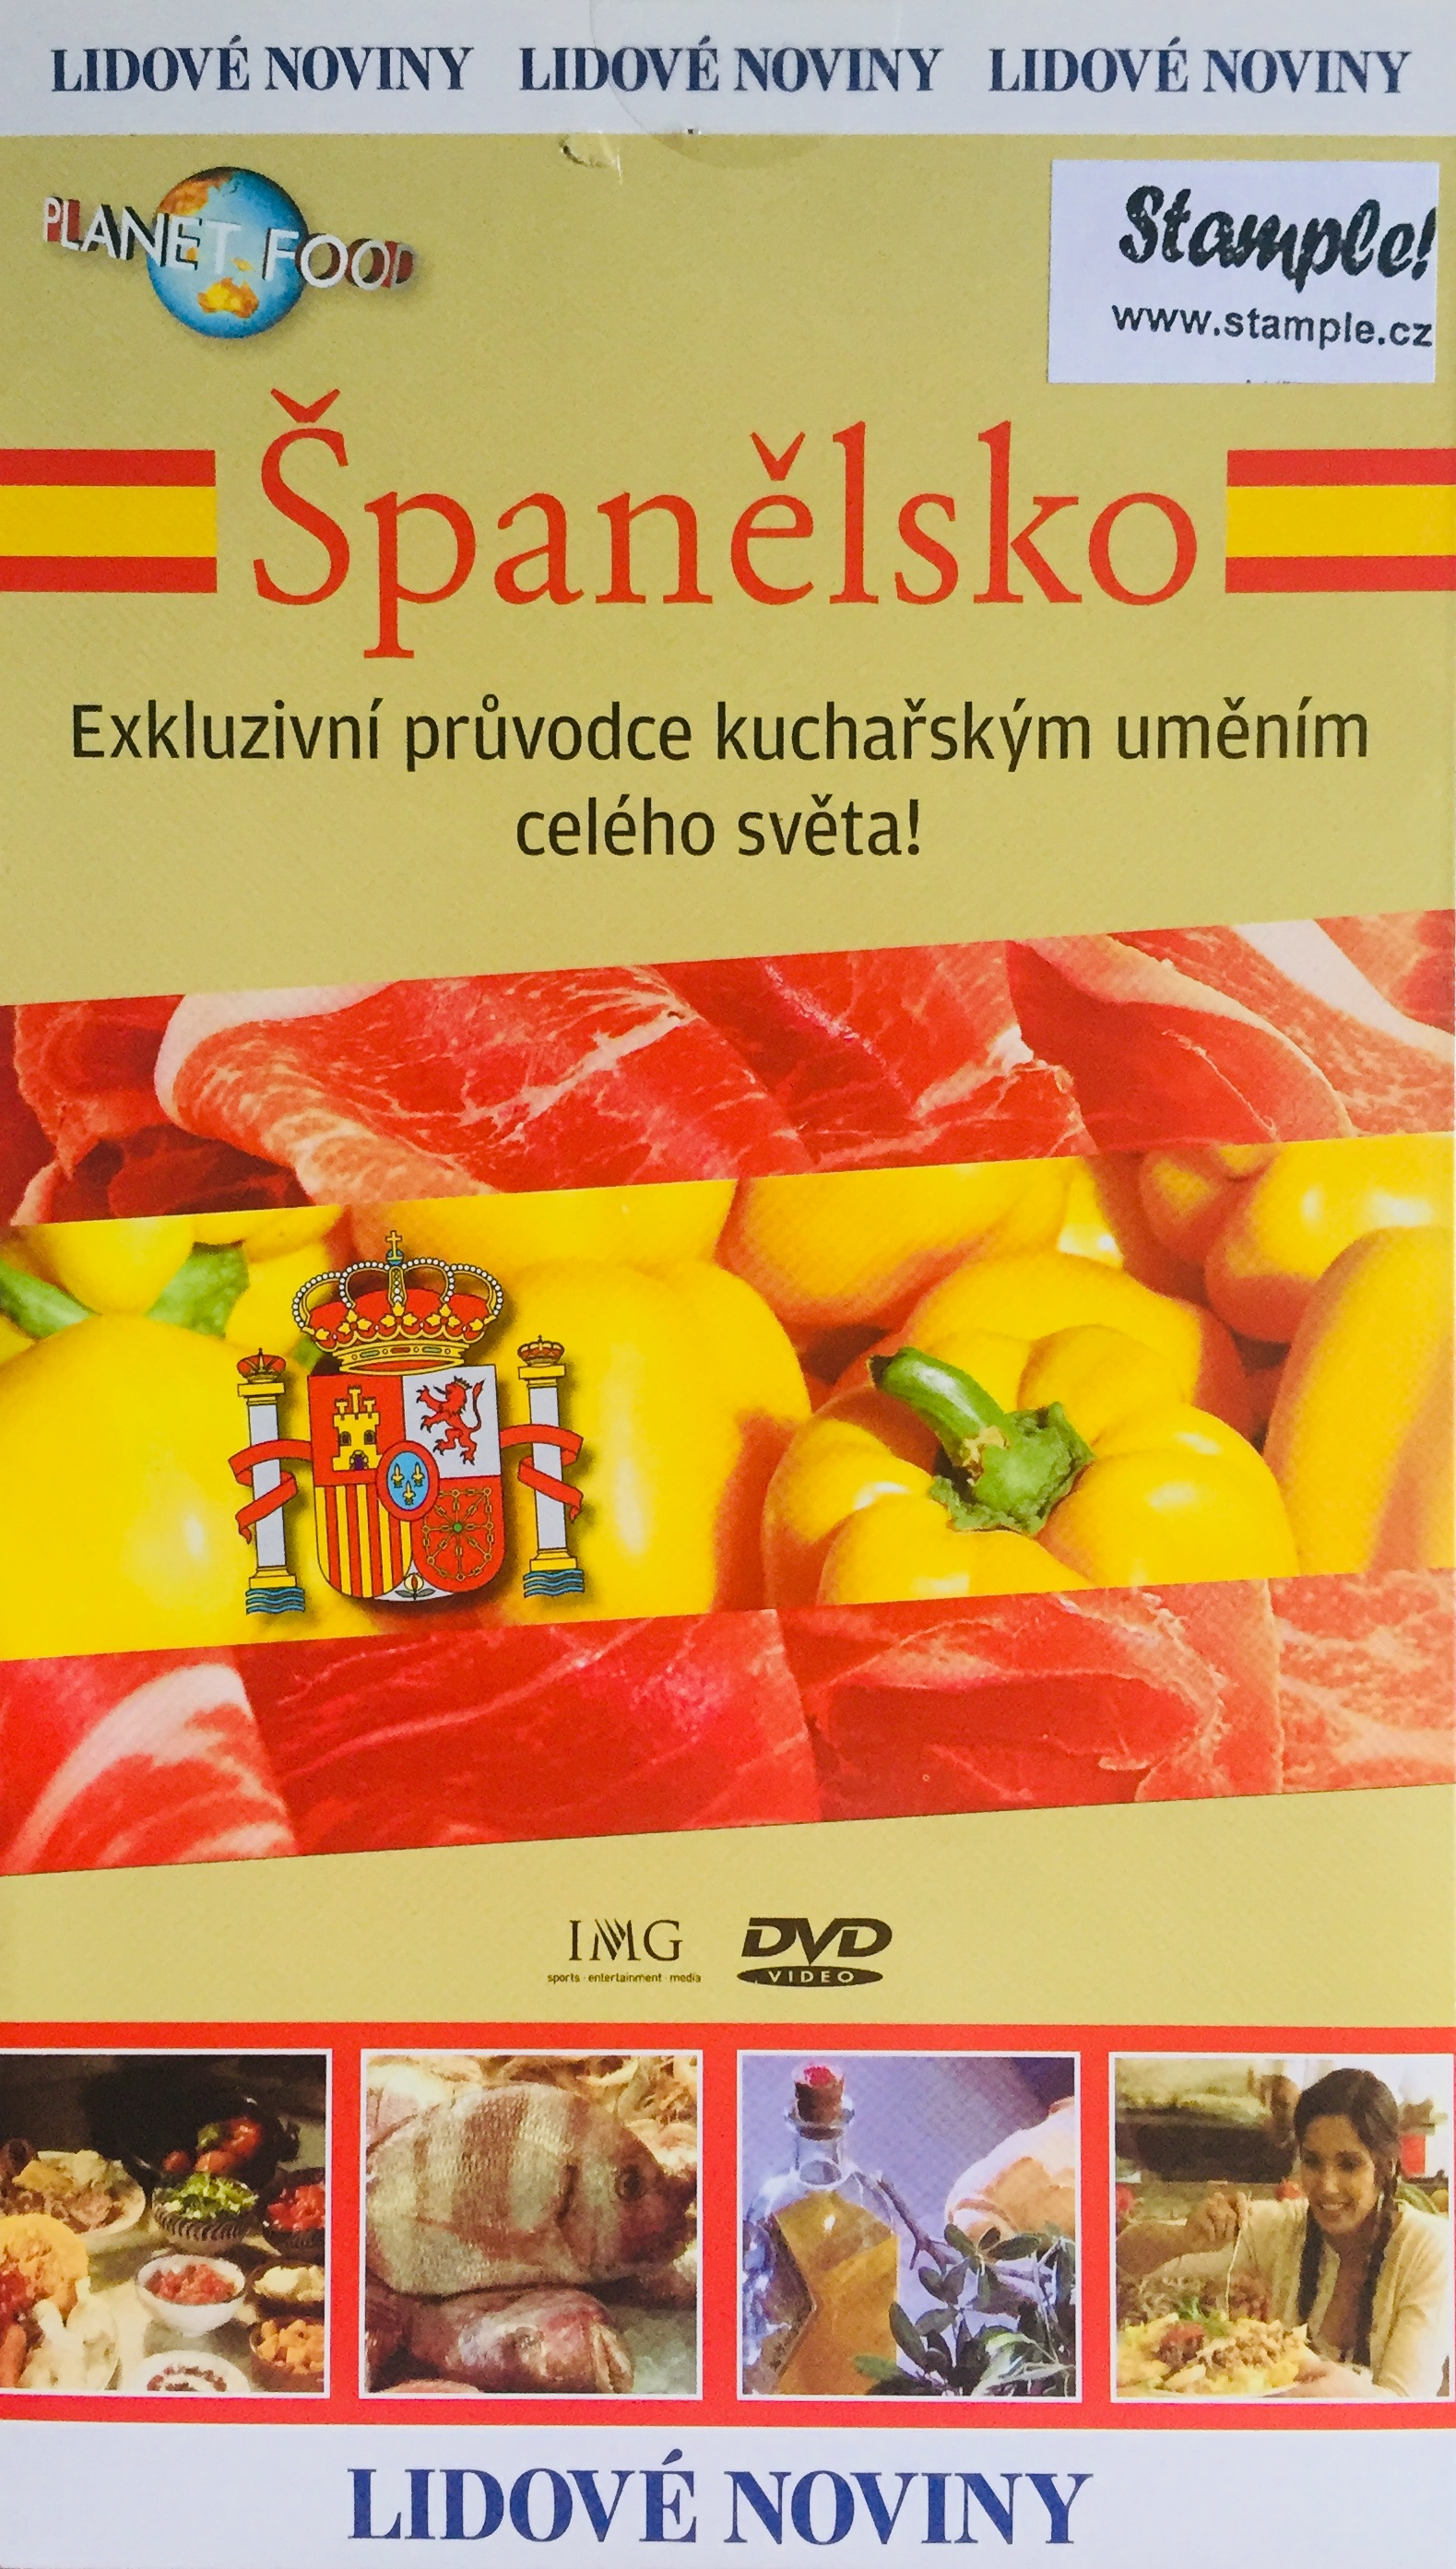 Planet Food - Španělsko - DVD /pošetka/